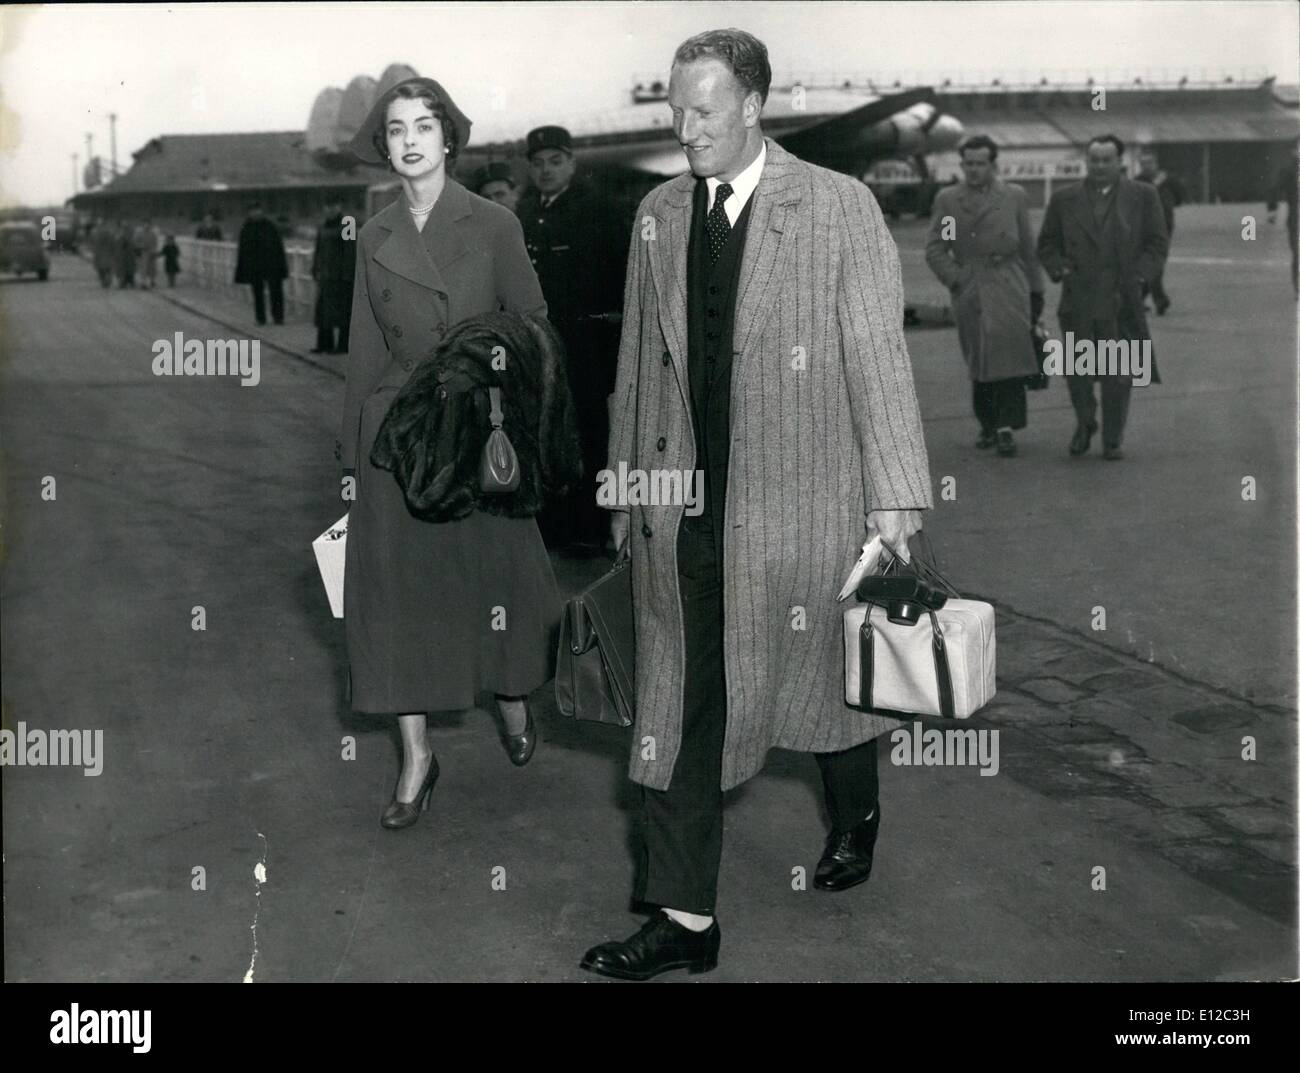 Dec. 16, 2011 - Earl of Dalkeith and his wife photographed on arrival at Orly Airfield this afternoon. - Stock Image